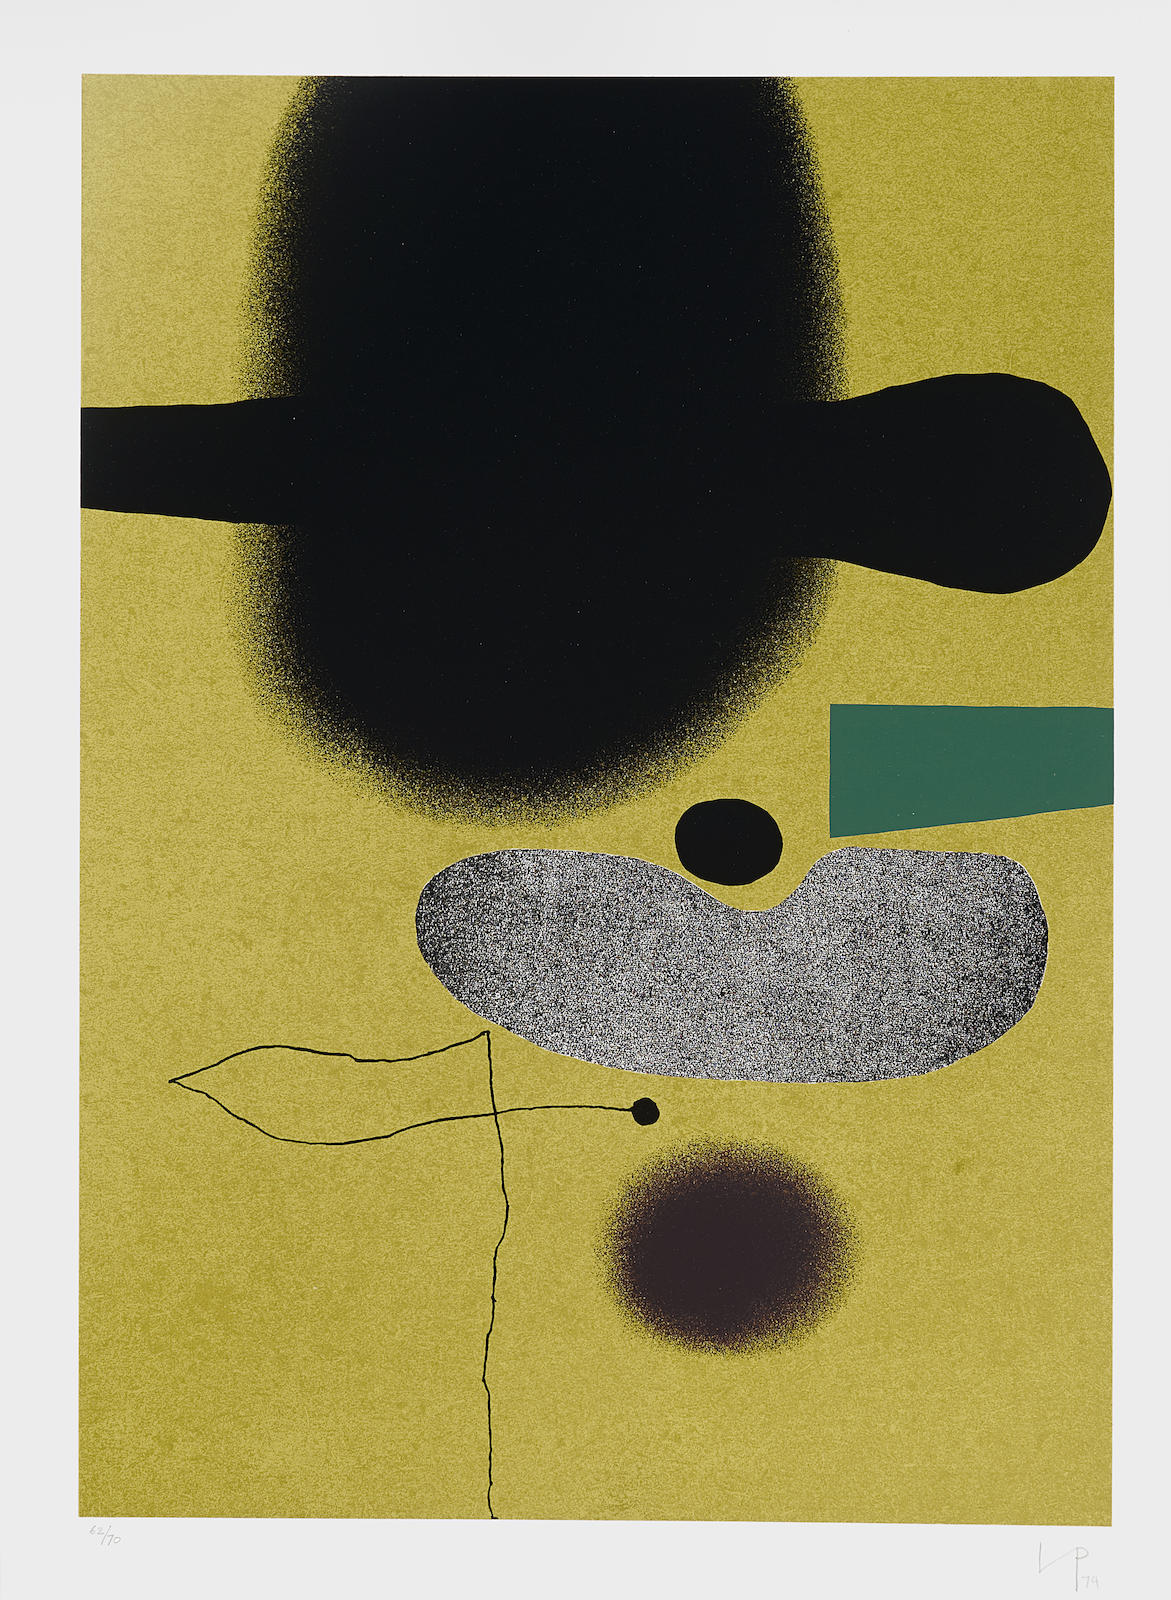 Victor Pasmore-Points of Contact No. 21 (B./L. 36)-1974